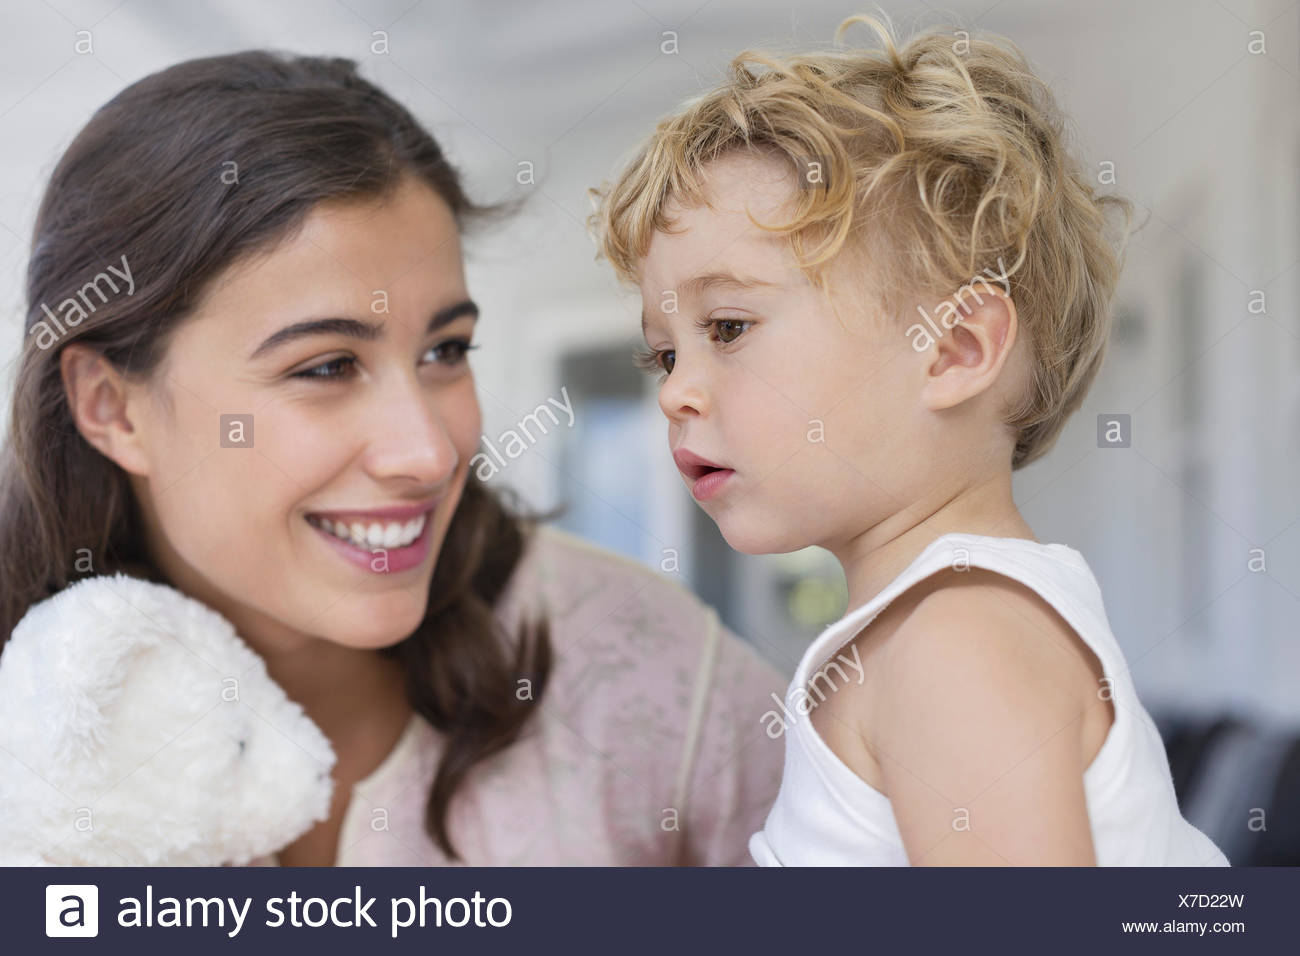 Close-up of mother playing with son at home - Stock Image